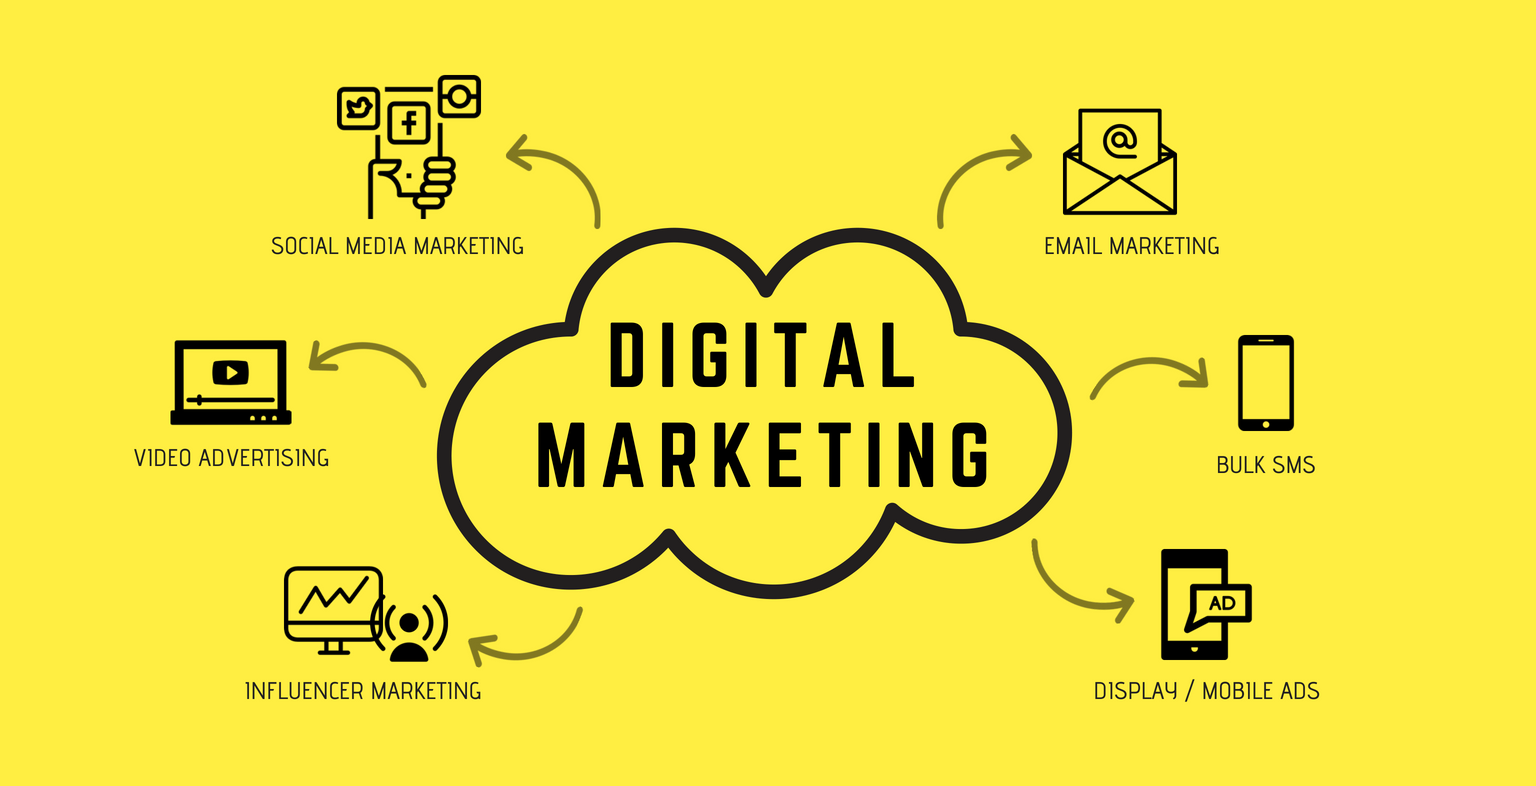 Digital Marketing Is The Best Way To Increase The Audience By Corporate